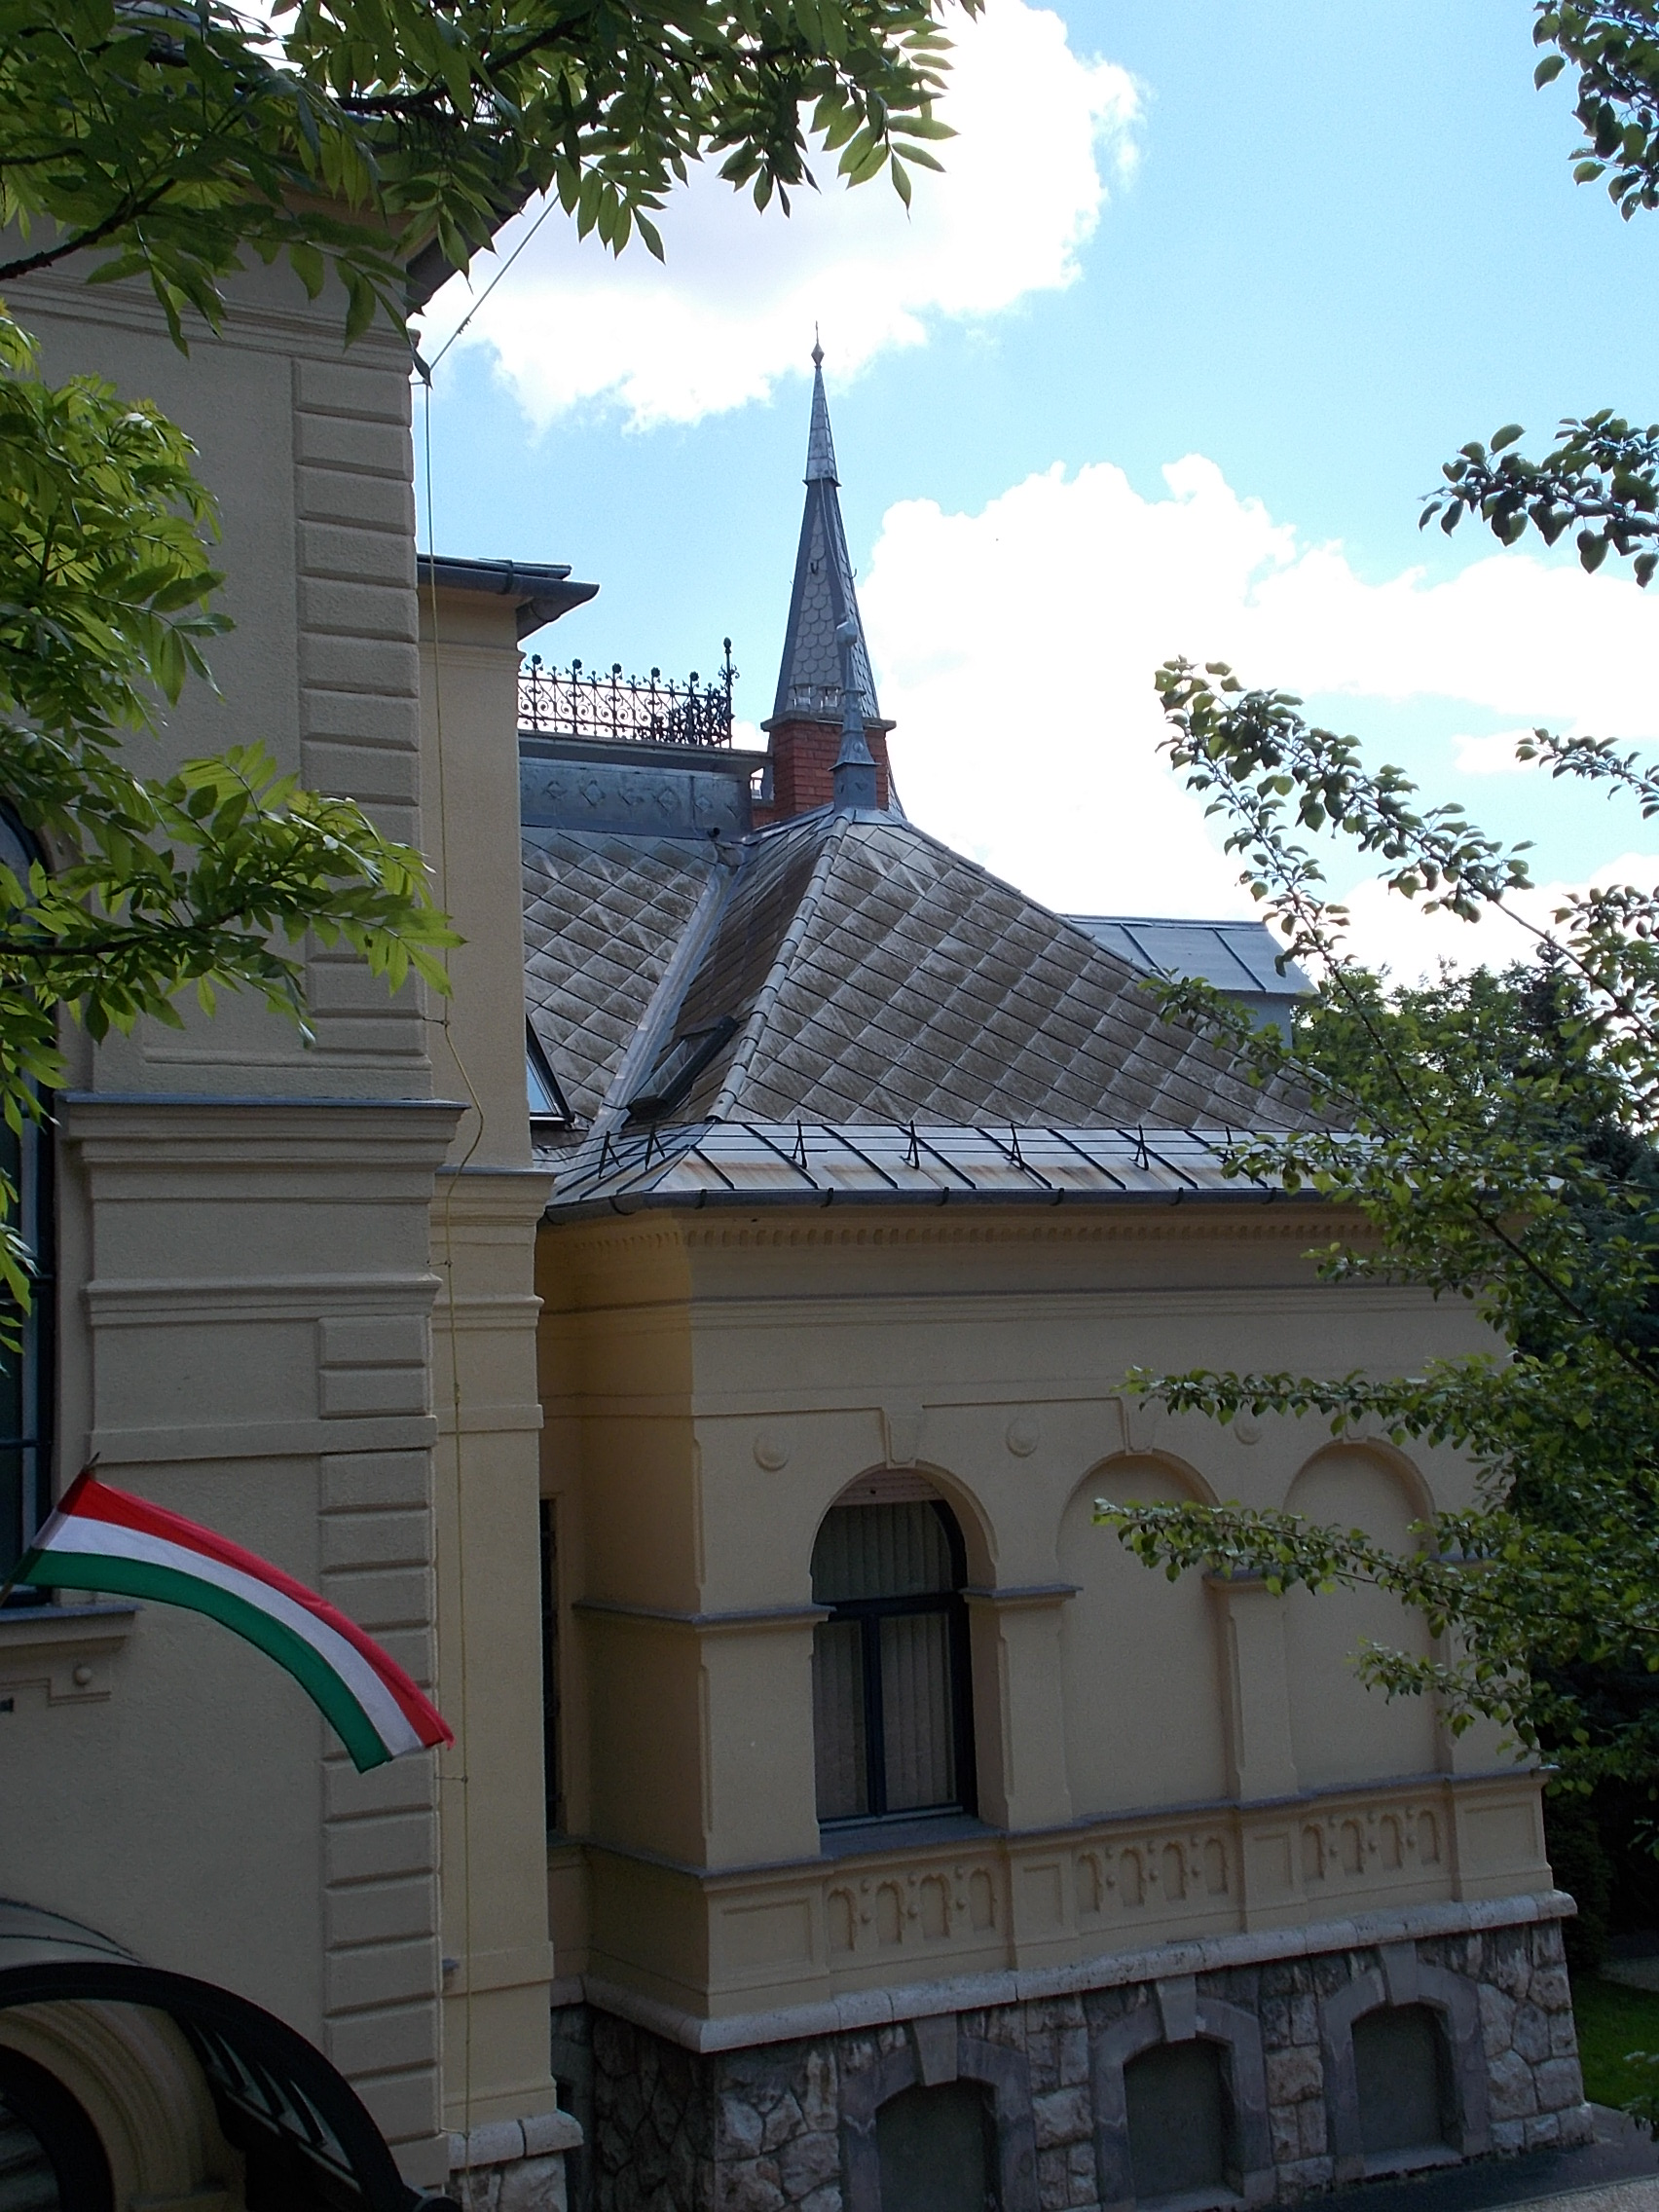 file:eclectic house, south wing, 15 cserje street, 2016 budapest